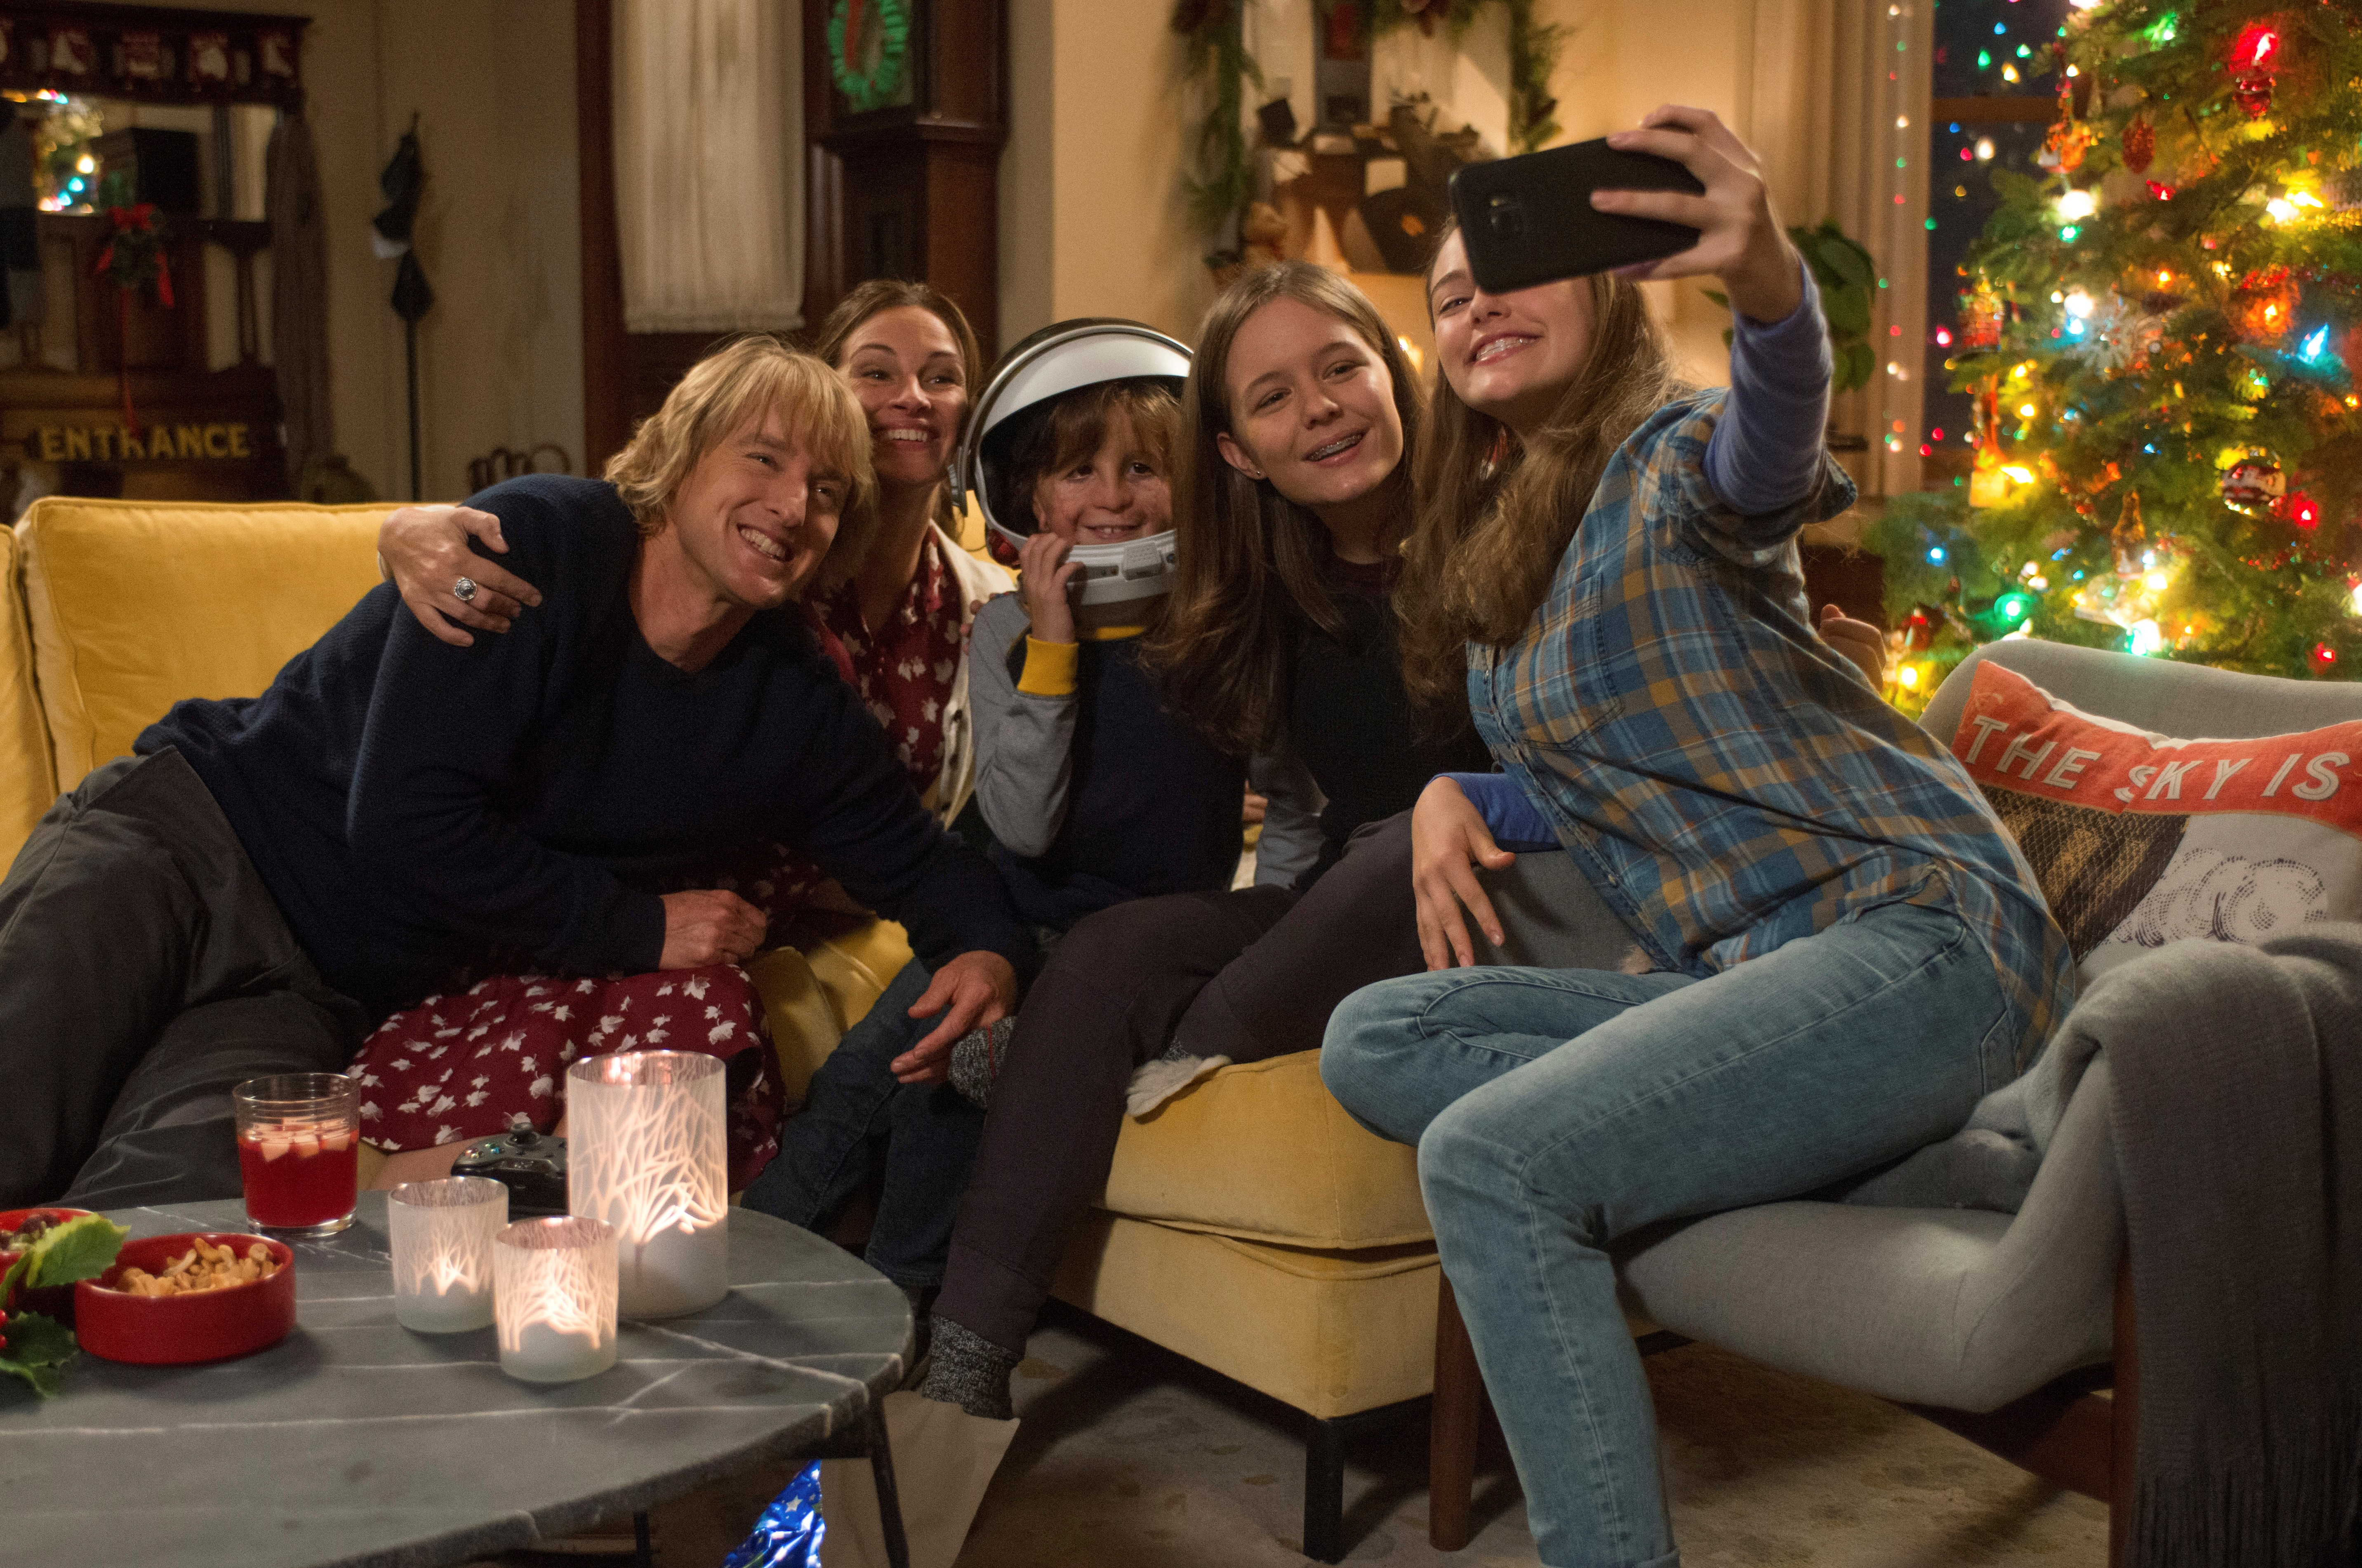 """Wonder's"" Pullman family plus friend Miranda. From L to R: Owen Wilson as 'Nate,' Julia Roberts as 'Isabel,' Jacob Tremblay as 'Auggie,' Izabela Vidovic as 'Via' and Danielle Rose Russell as 'Miranda.'"